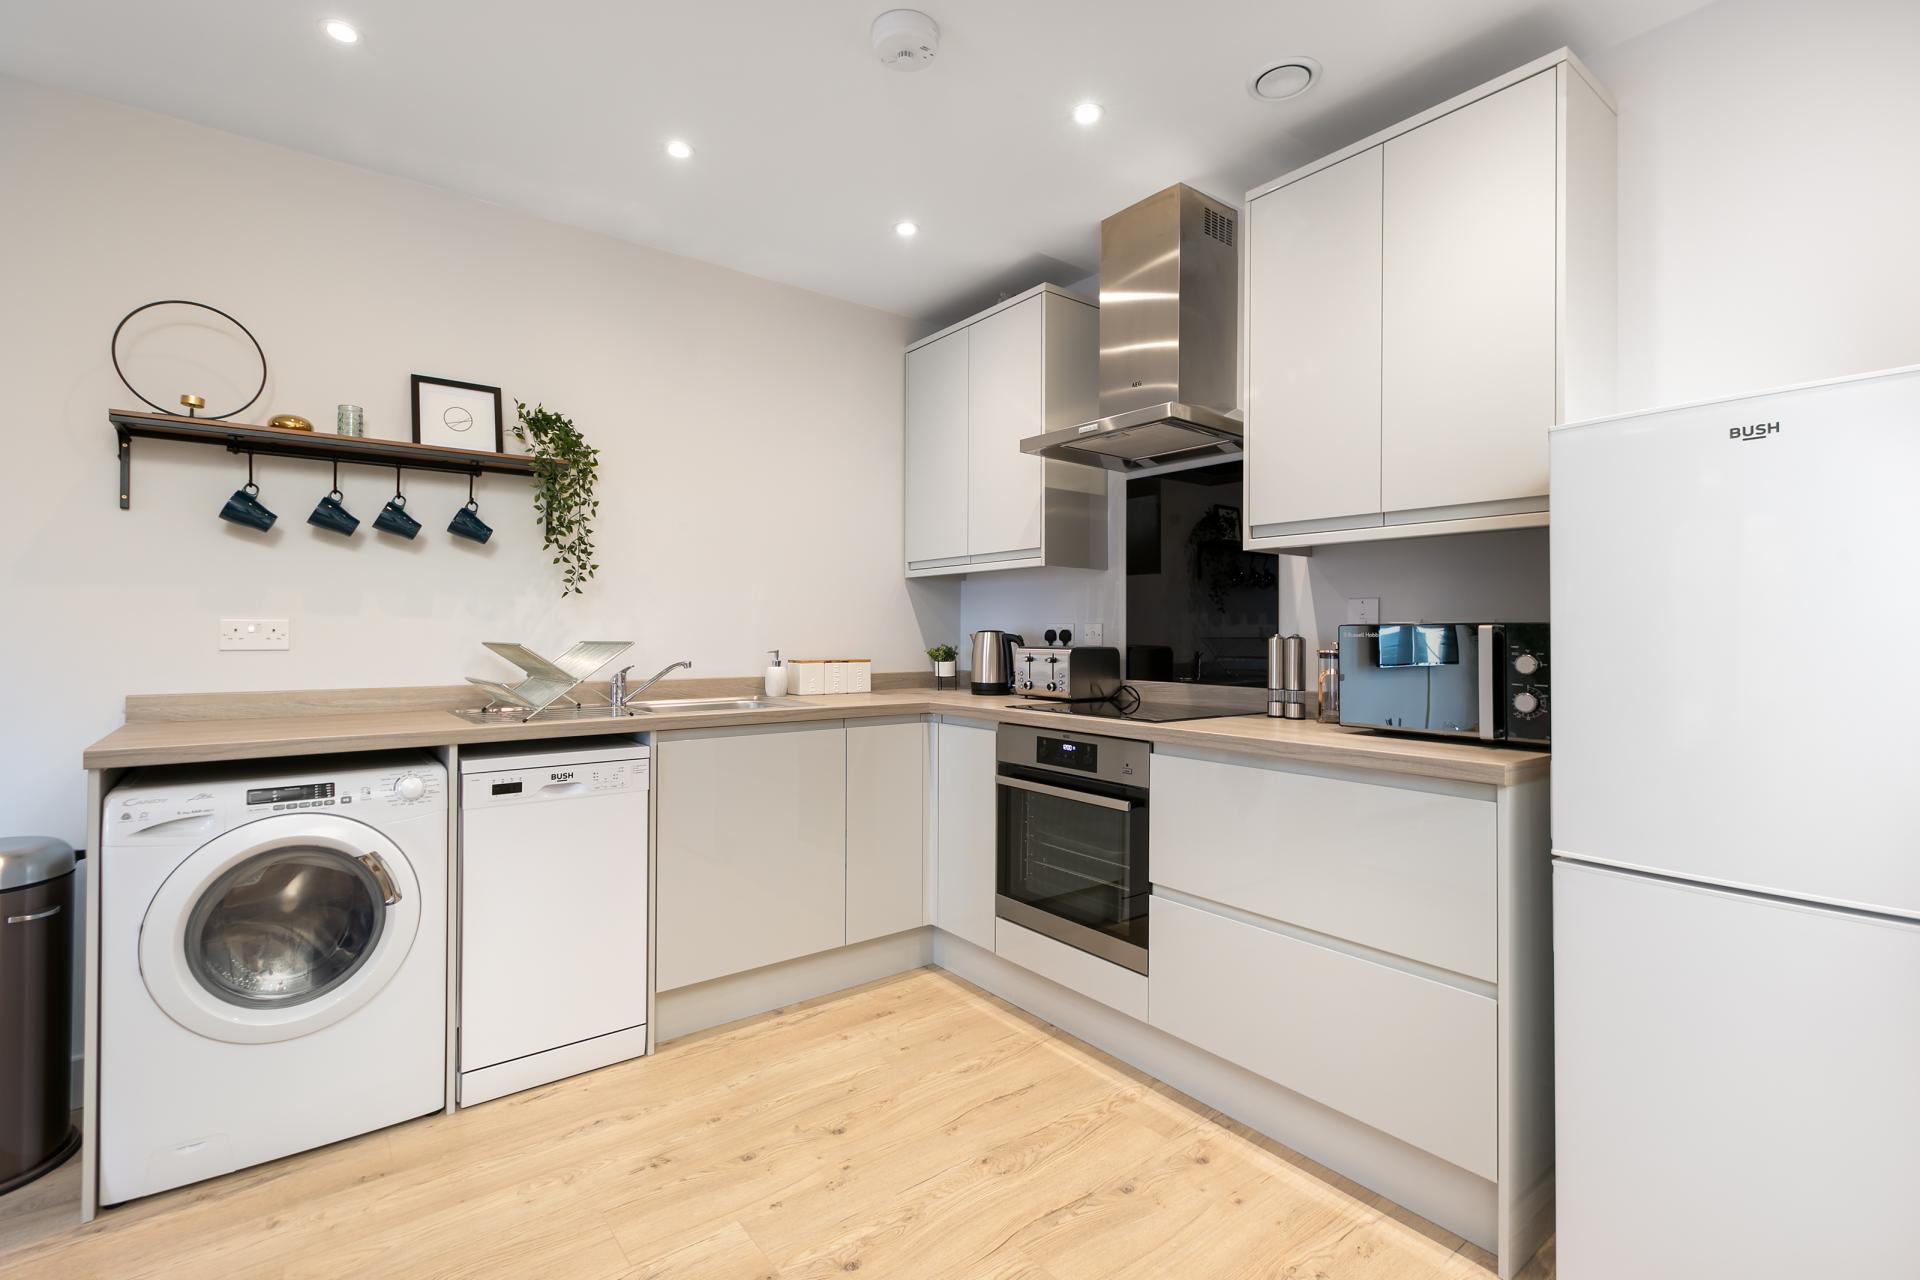 Kitchen at Wesley Gate Apartments, Centre, Reading - Citybase Apartments